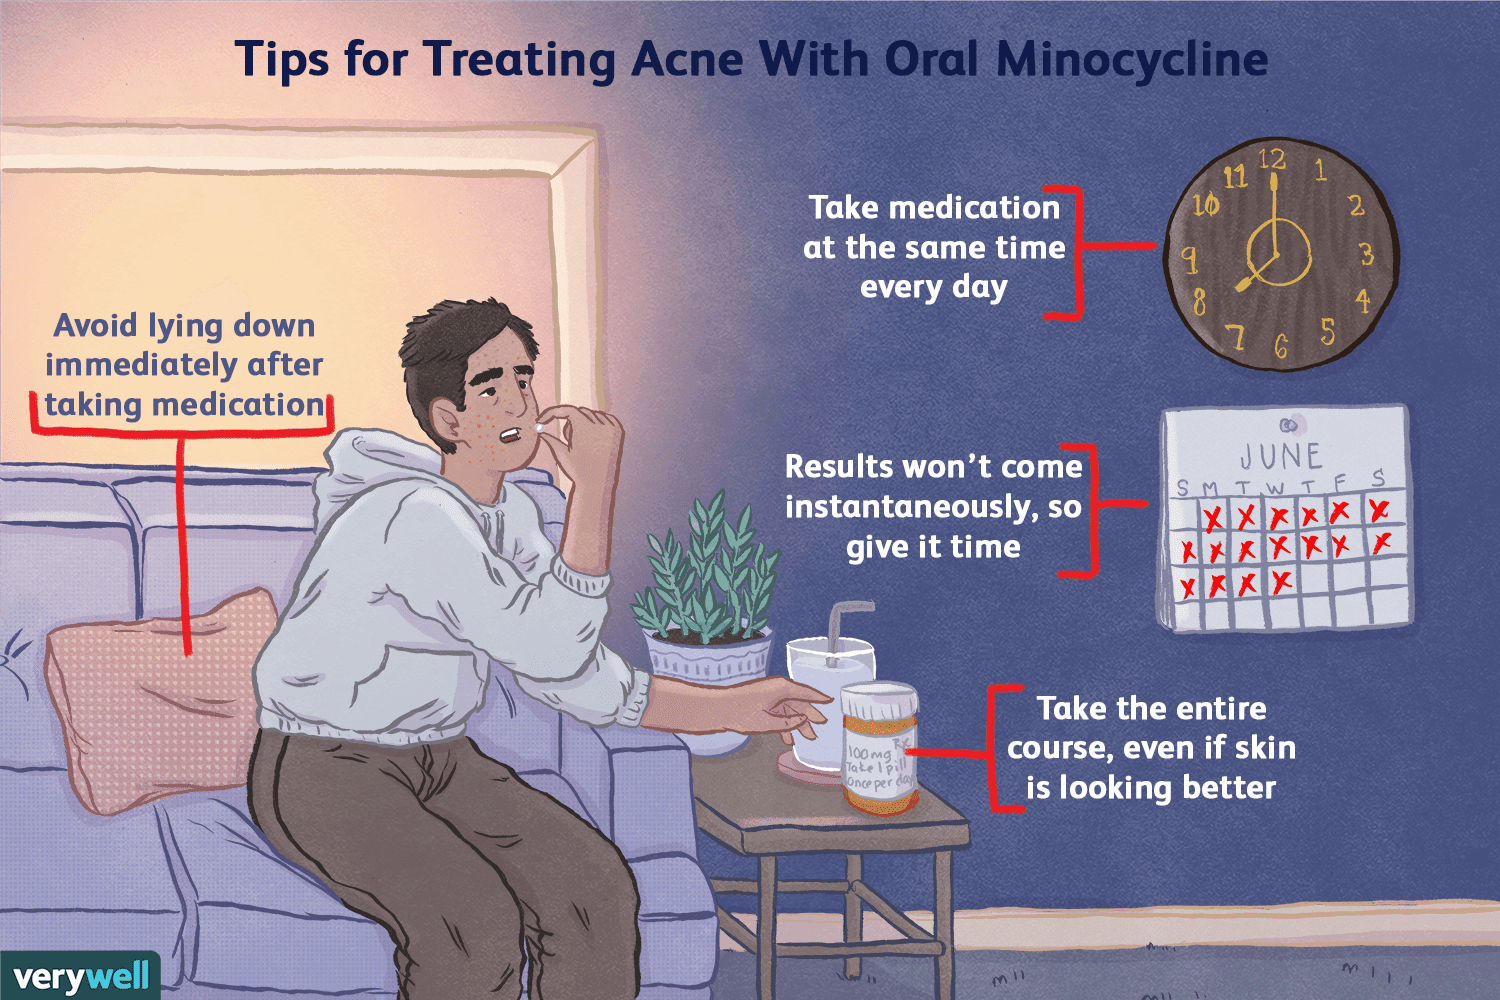 Tips for treating acne with oral minocycline